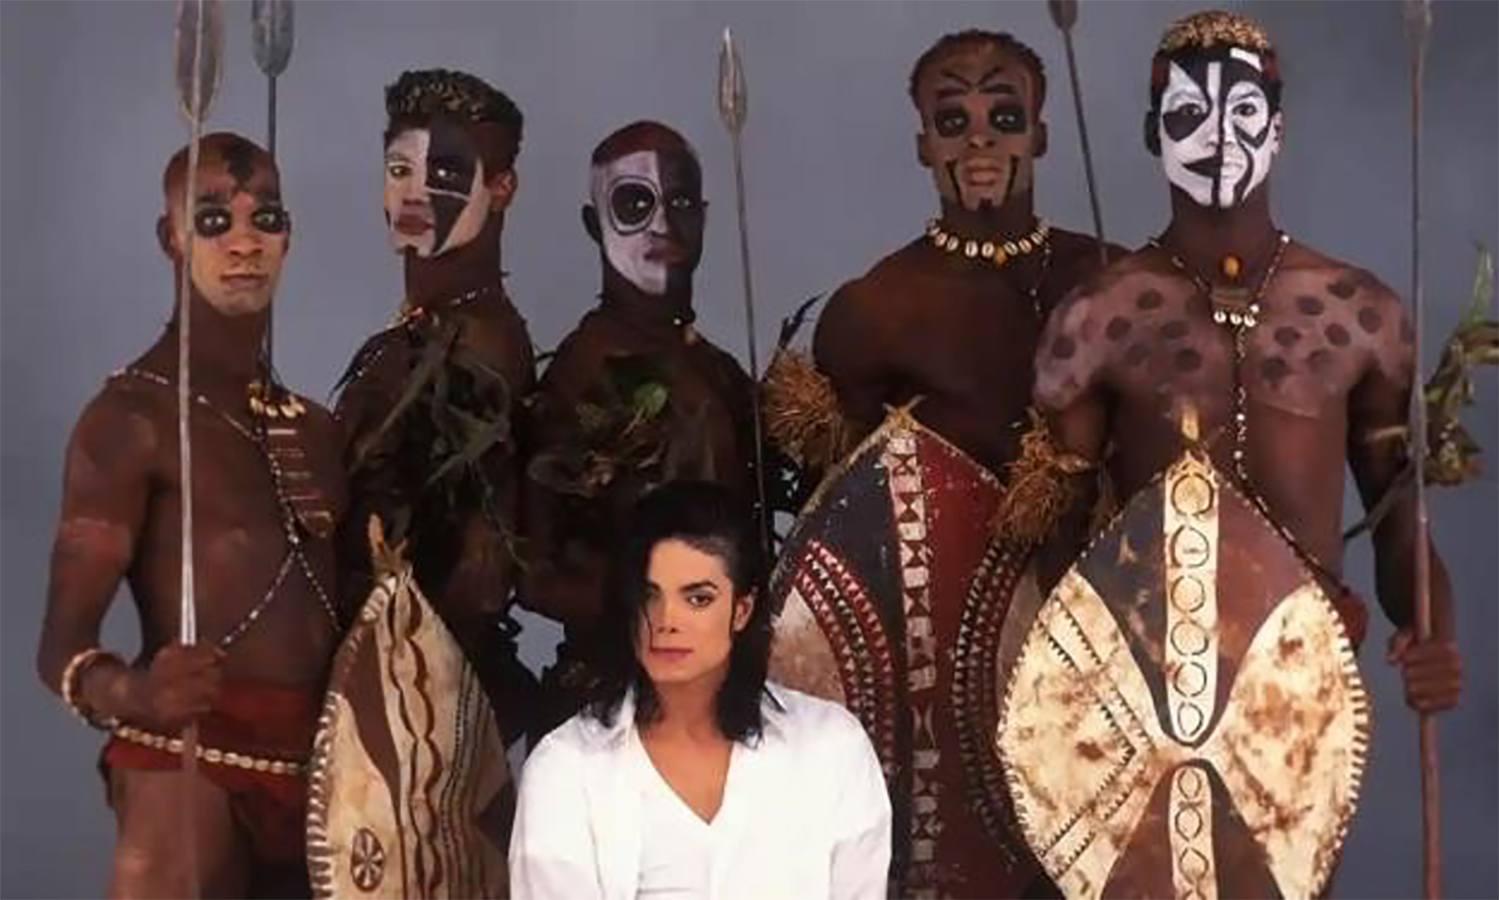 Joseph Vogel, author of 'Man in the Music: The Creative Life and Work of Michael Jackson' Speaks On Racism